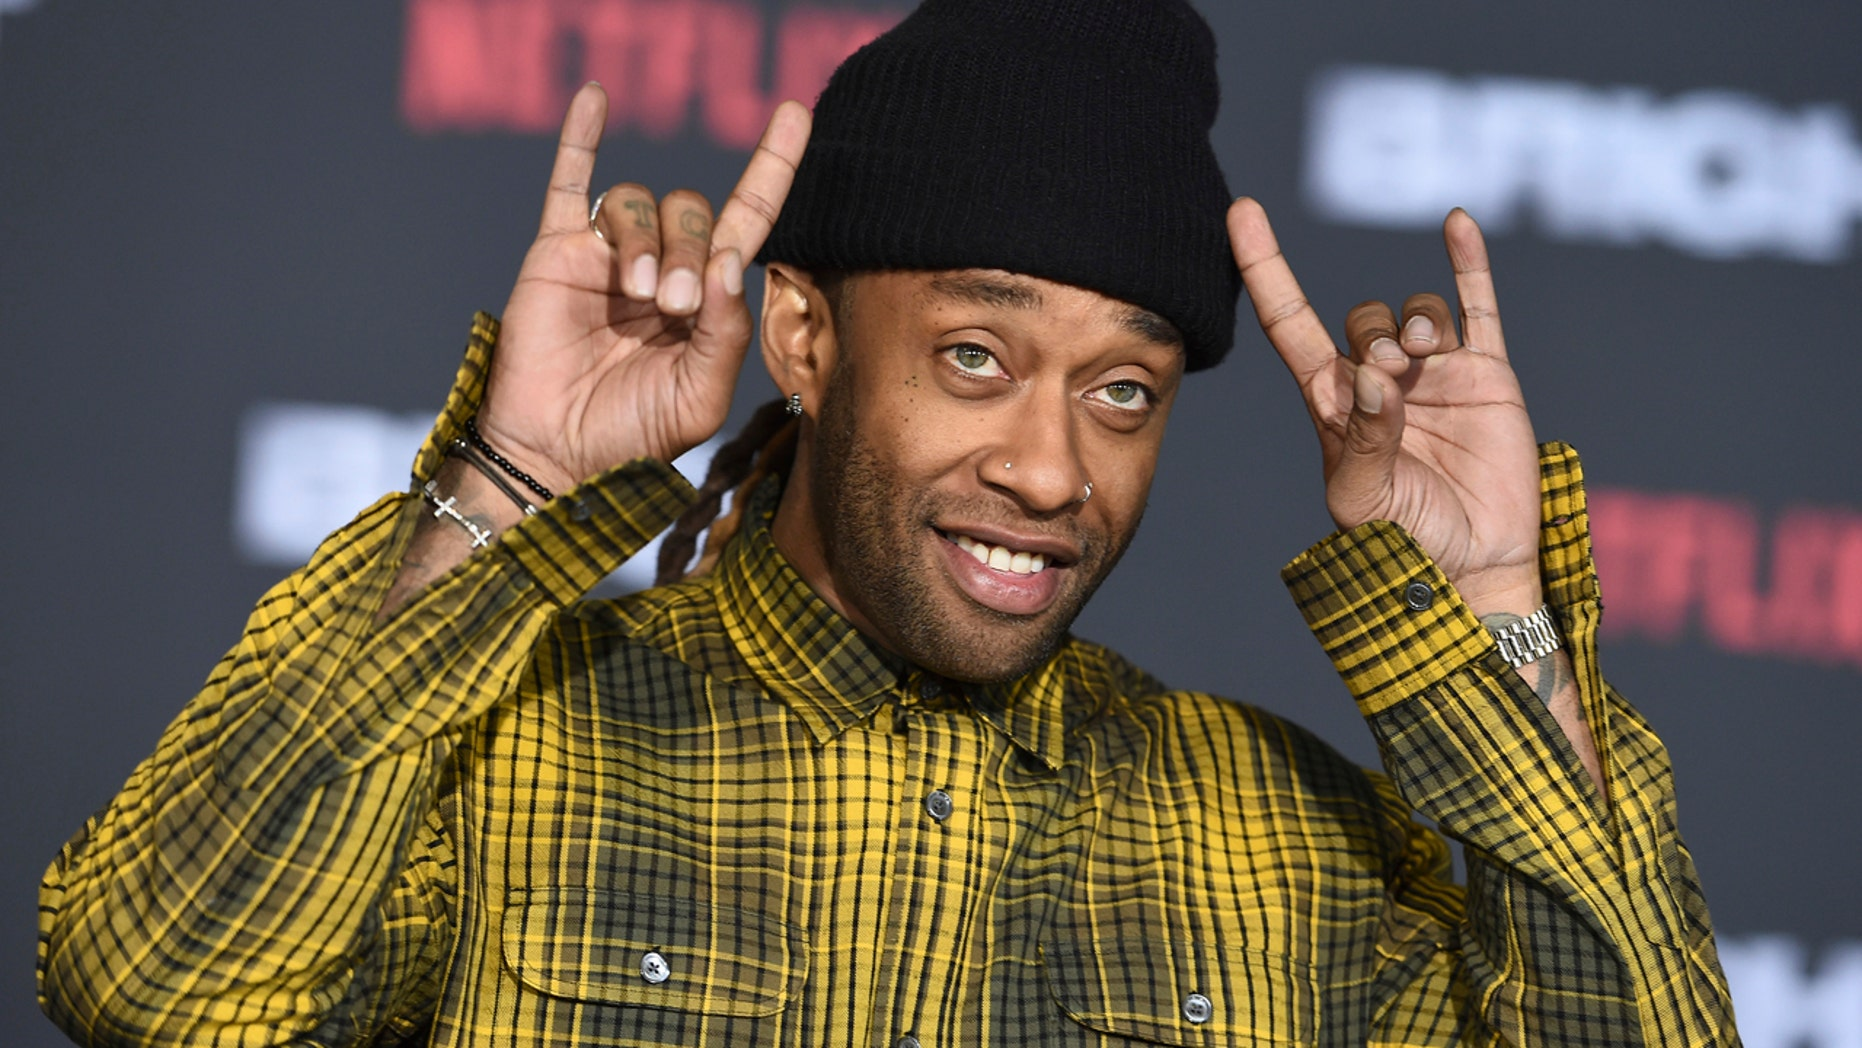 """FILE - In this Dec. 13, 2017, file photo, Ty Dolla $ign arrives at the U.S. premiere of """"Bright"""" at the Regency Village Theatre in Los Angeles. Singer and rapper Ty Dolla $ign has been arrested Wednesday, Sept. 5, 2018, on drug charges in Atlanta. (Photo by Jordan Strauss/Invision/AP, File)"""